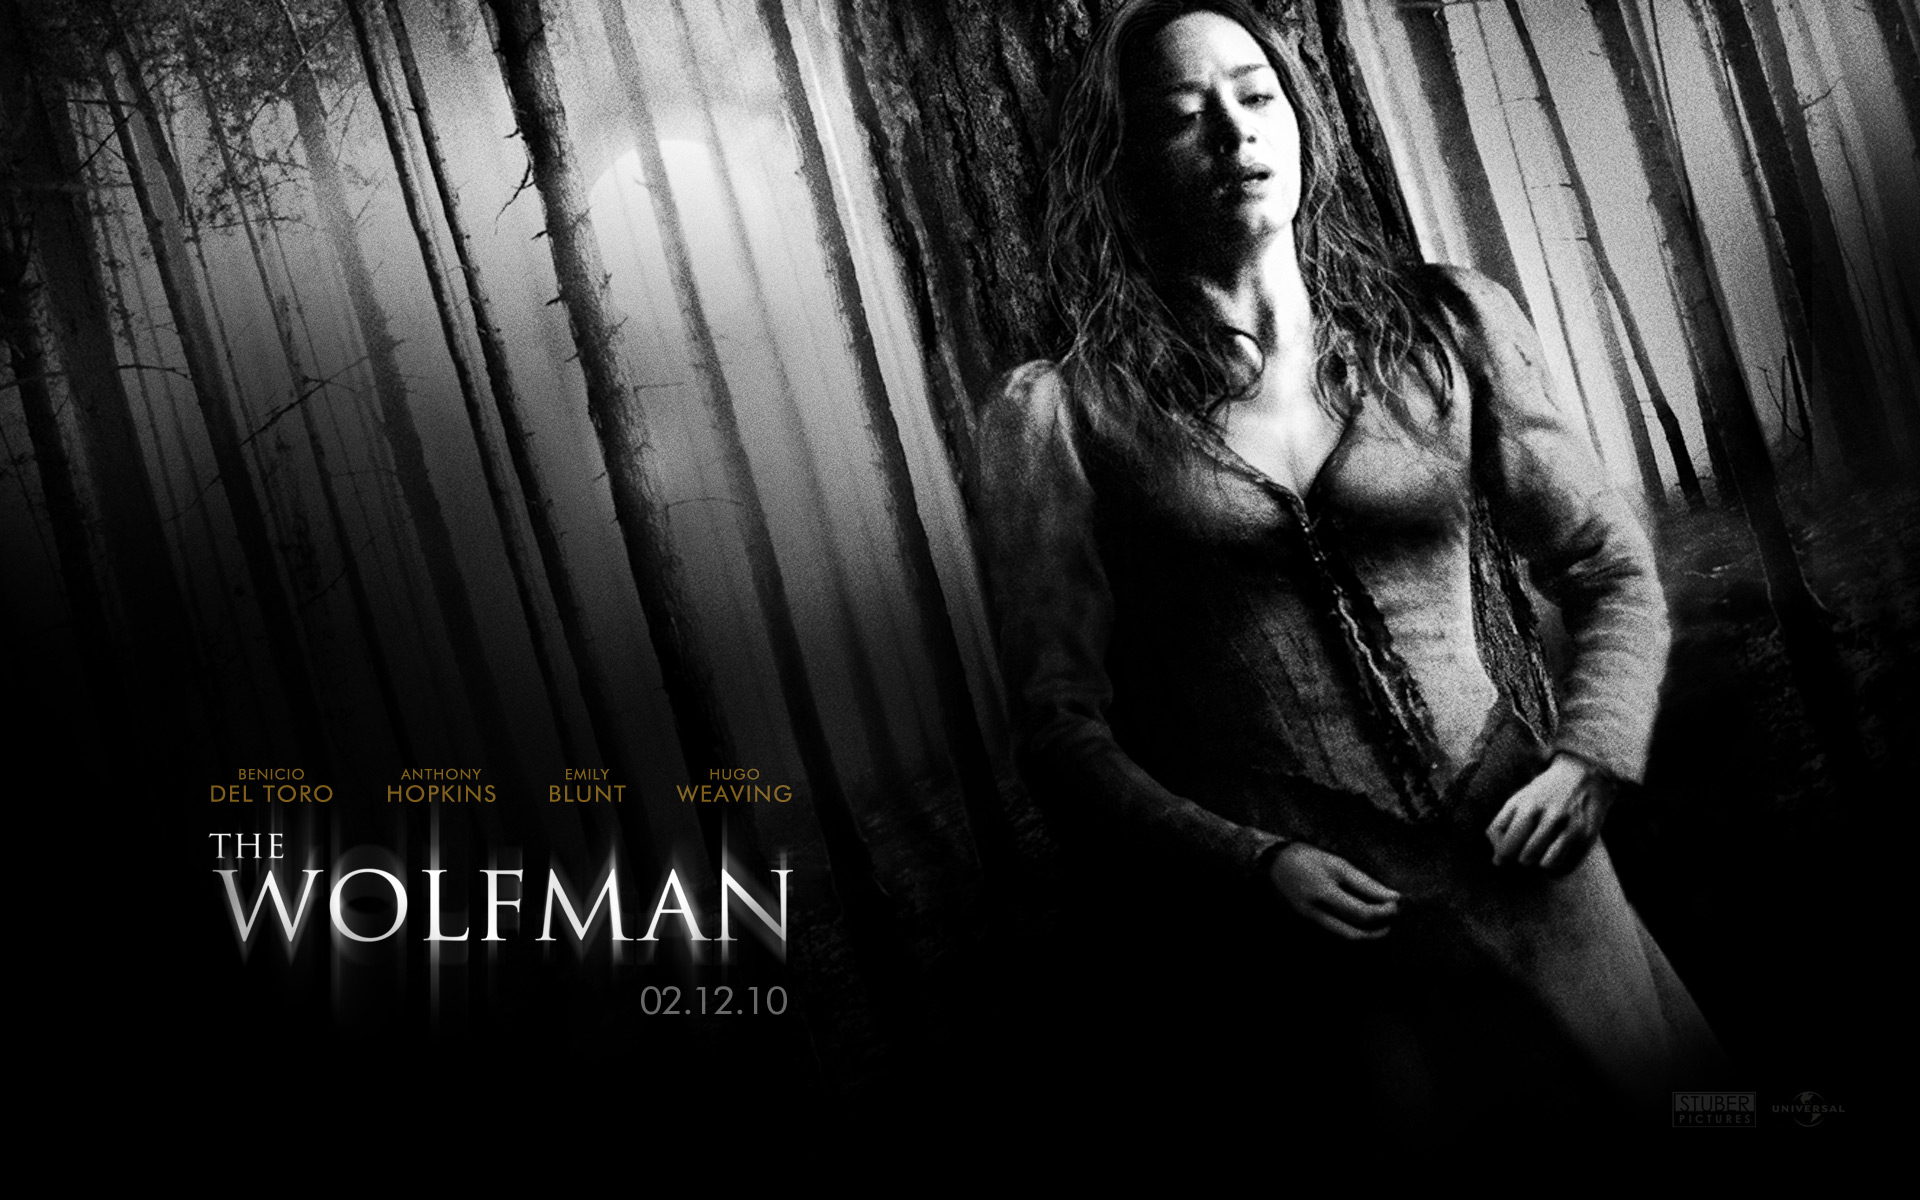 the wolfman | free desktop wallpapers for widescreen, hd and mobile